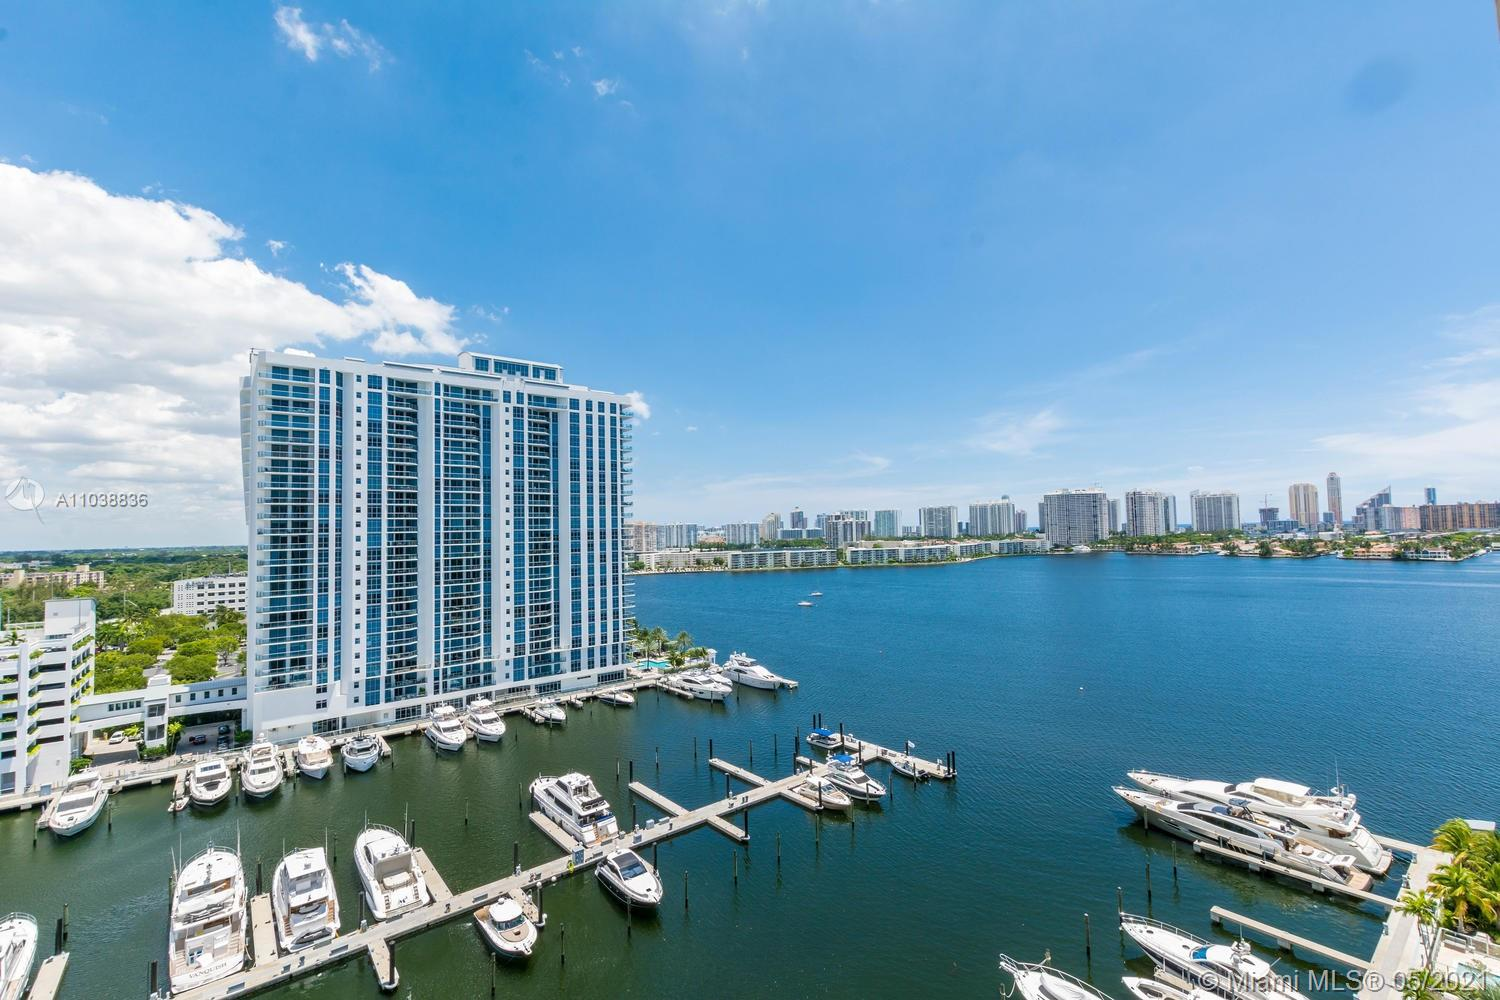 Marina Palms 1 #1401 - 17111 Biscayne Blvd #1401, North Miami Beach, FL 33160